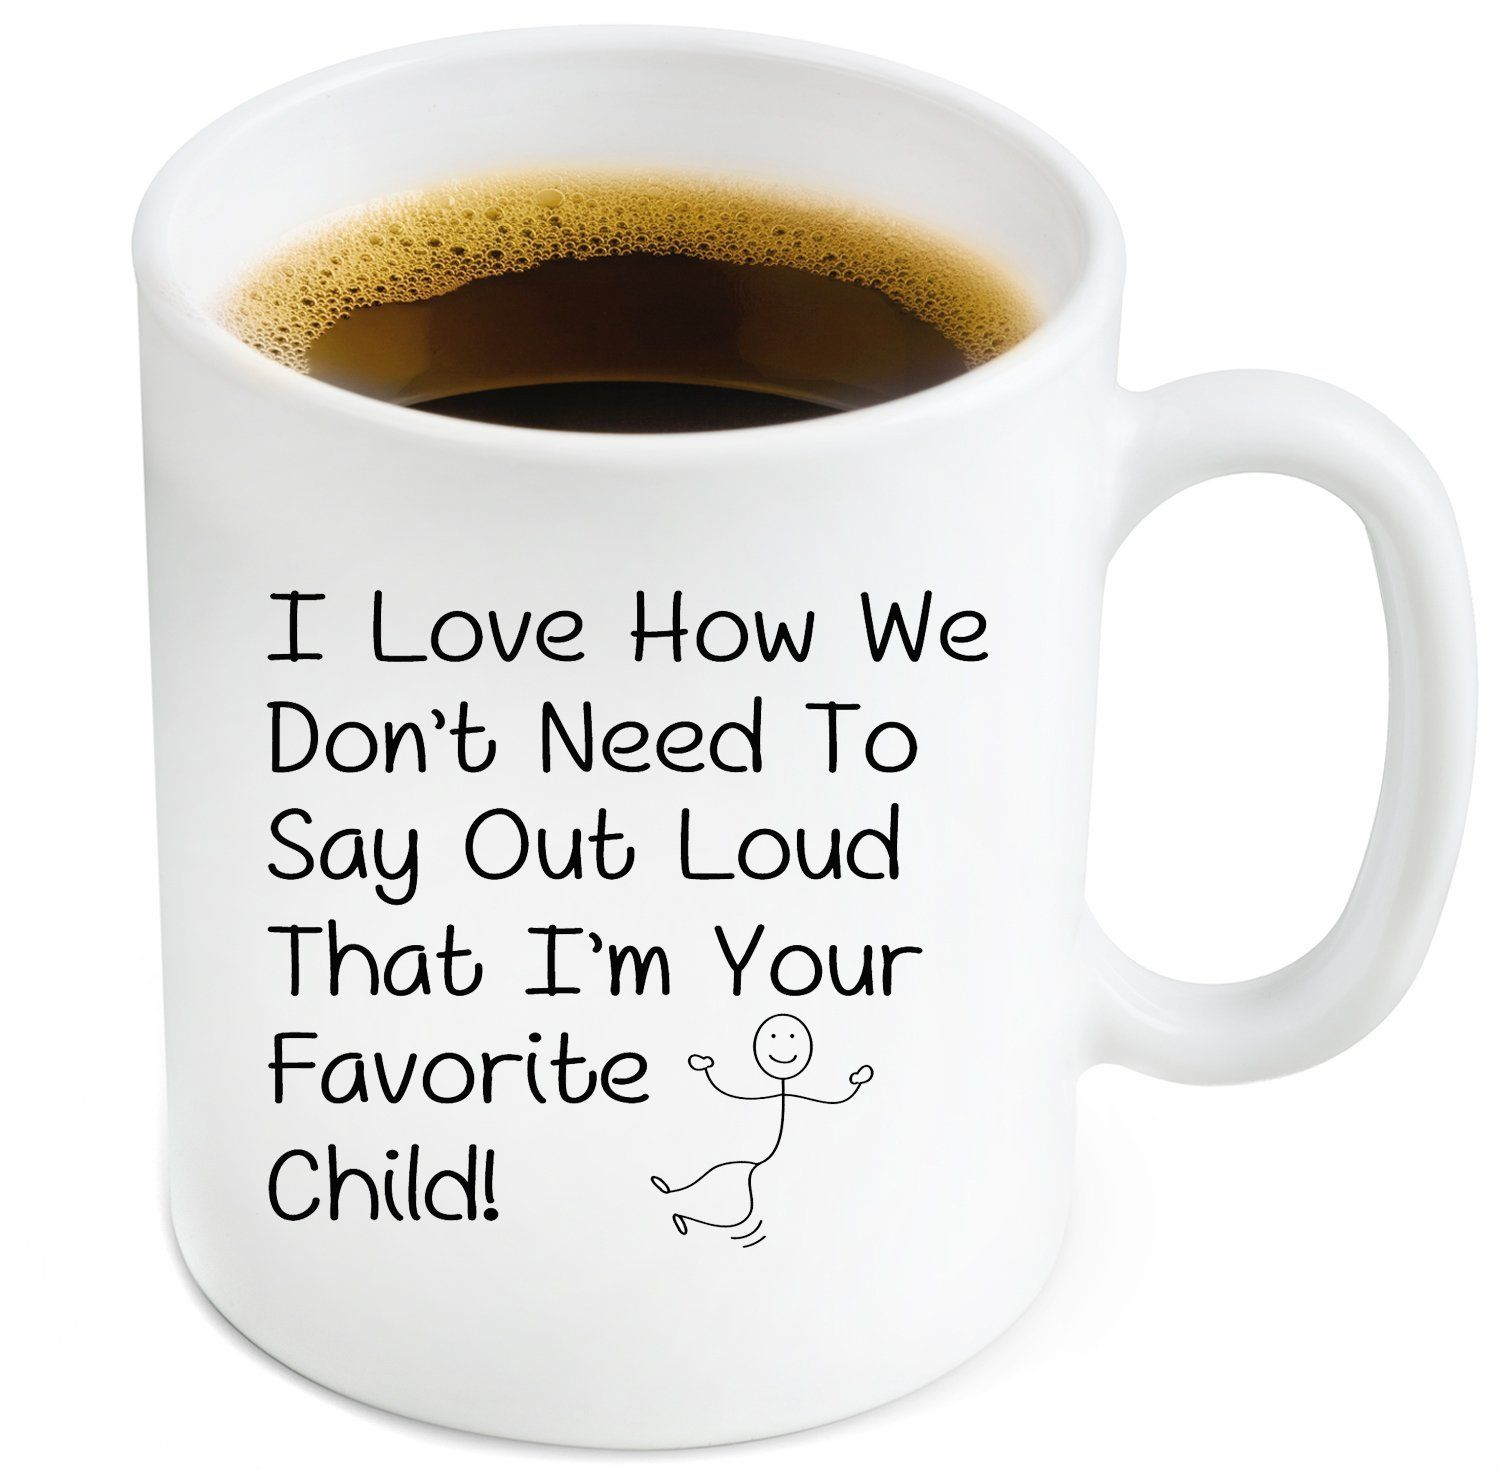 Favorite Child Funny Ceramic Coffee Mug Fun Mother's or